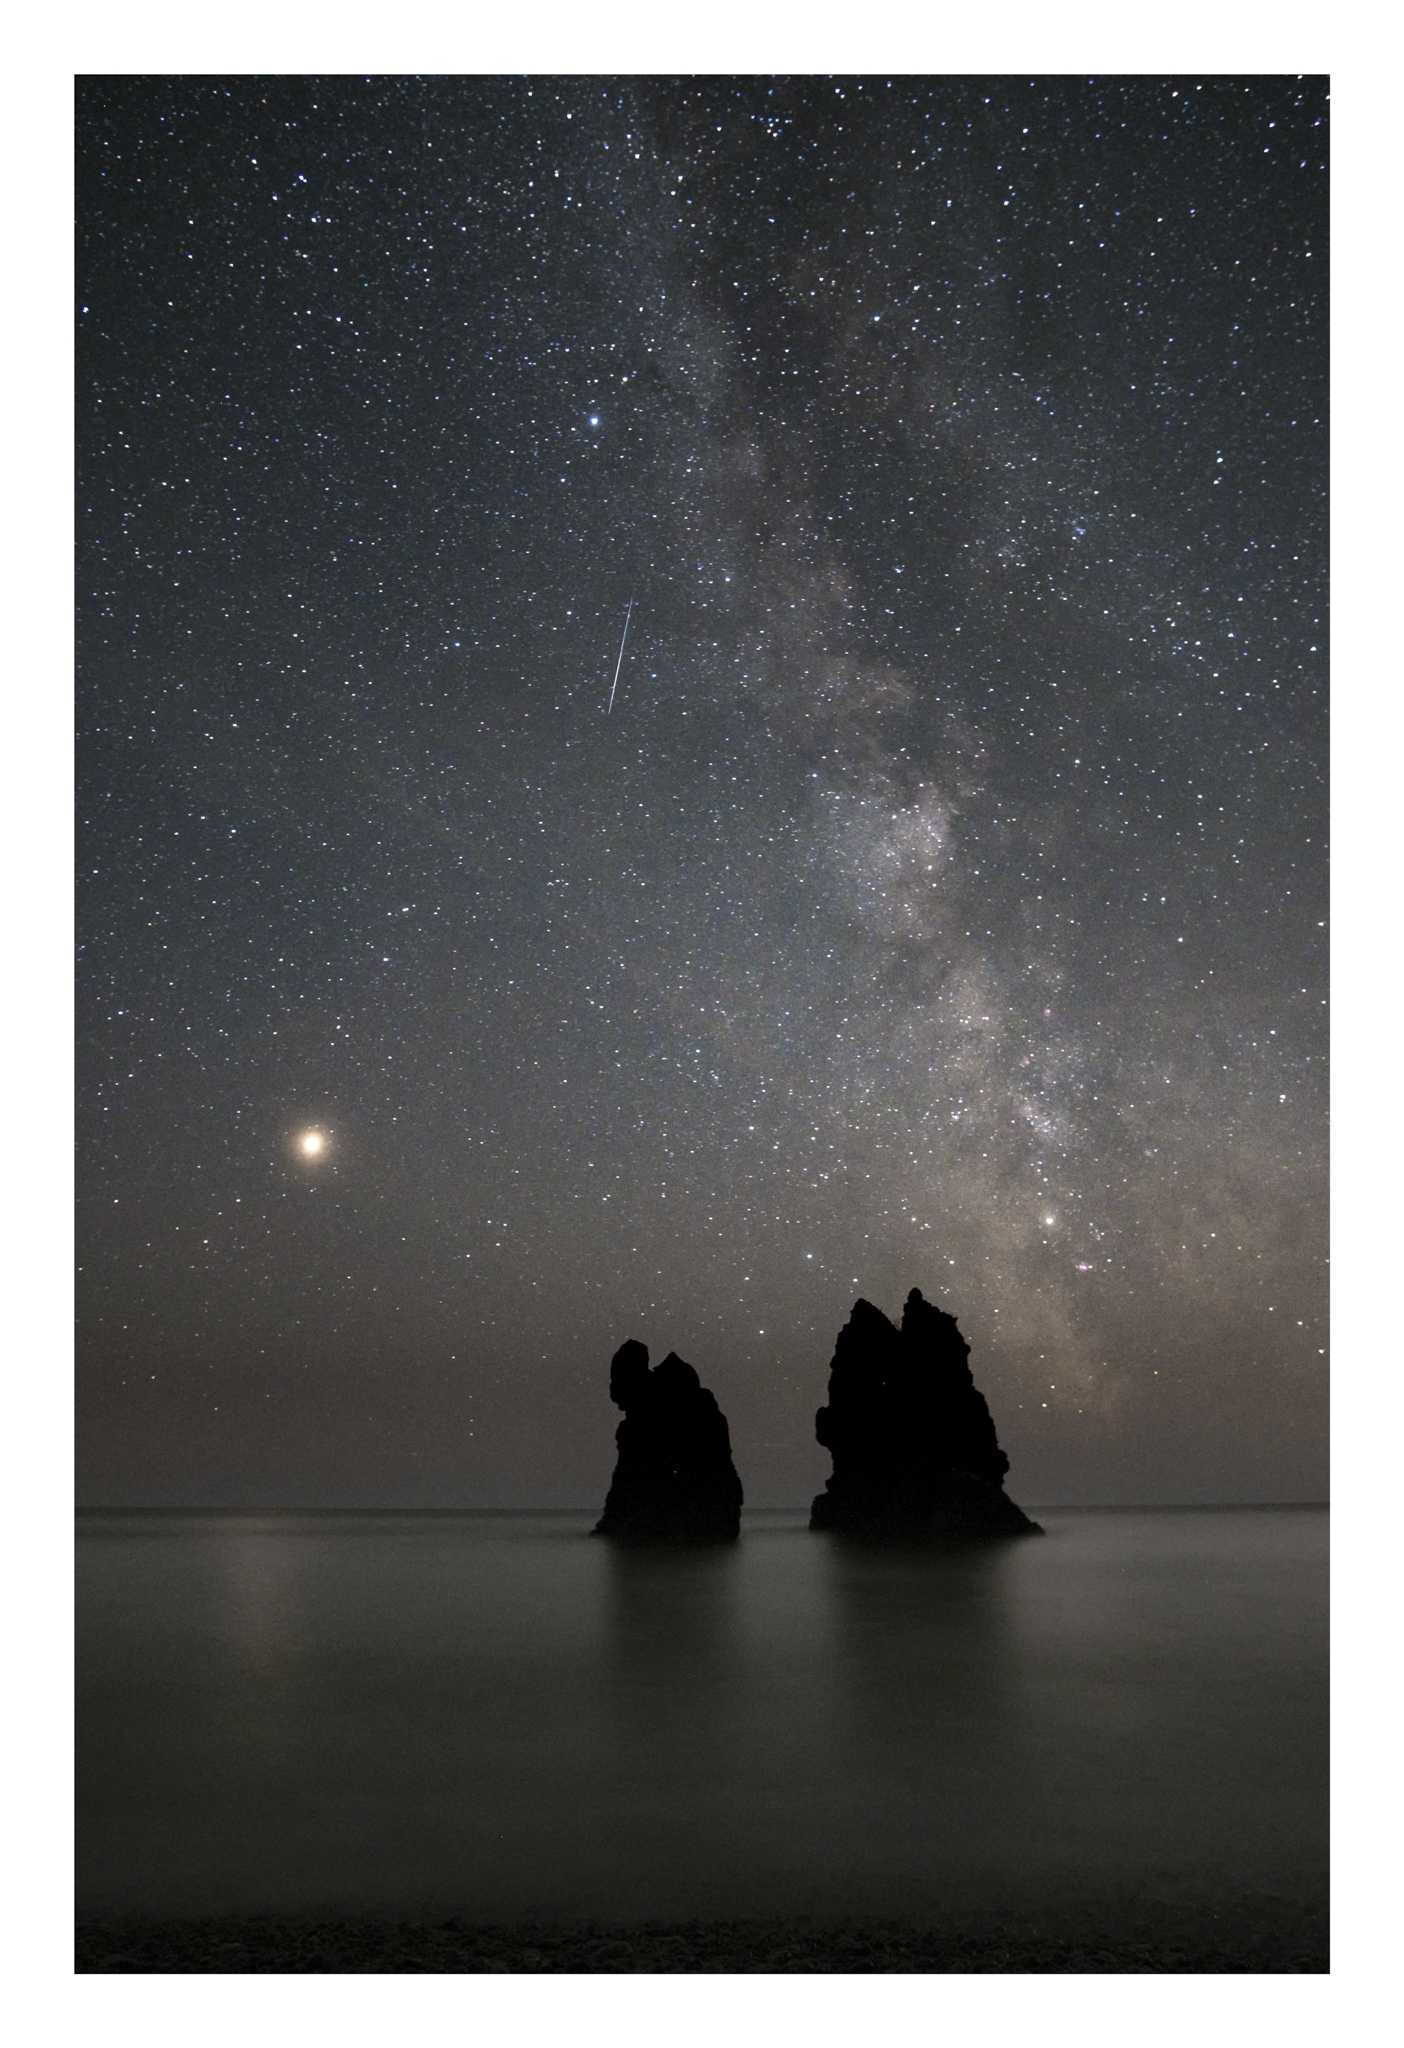 Milkyway 1 Copper coast astrophotography